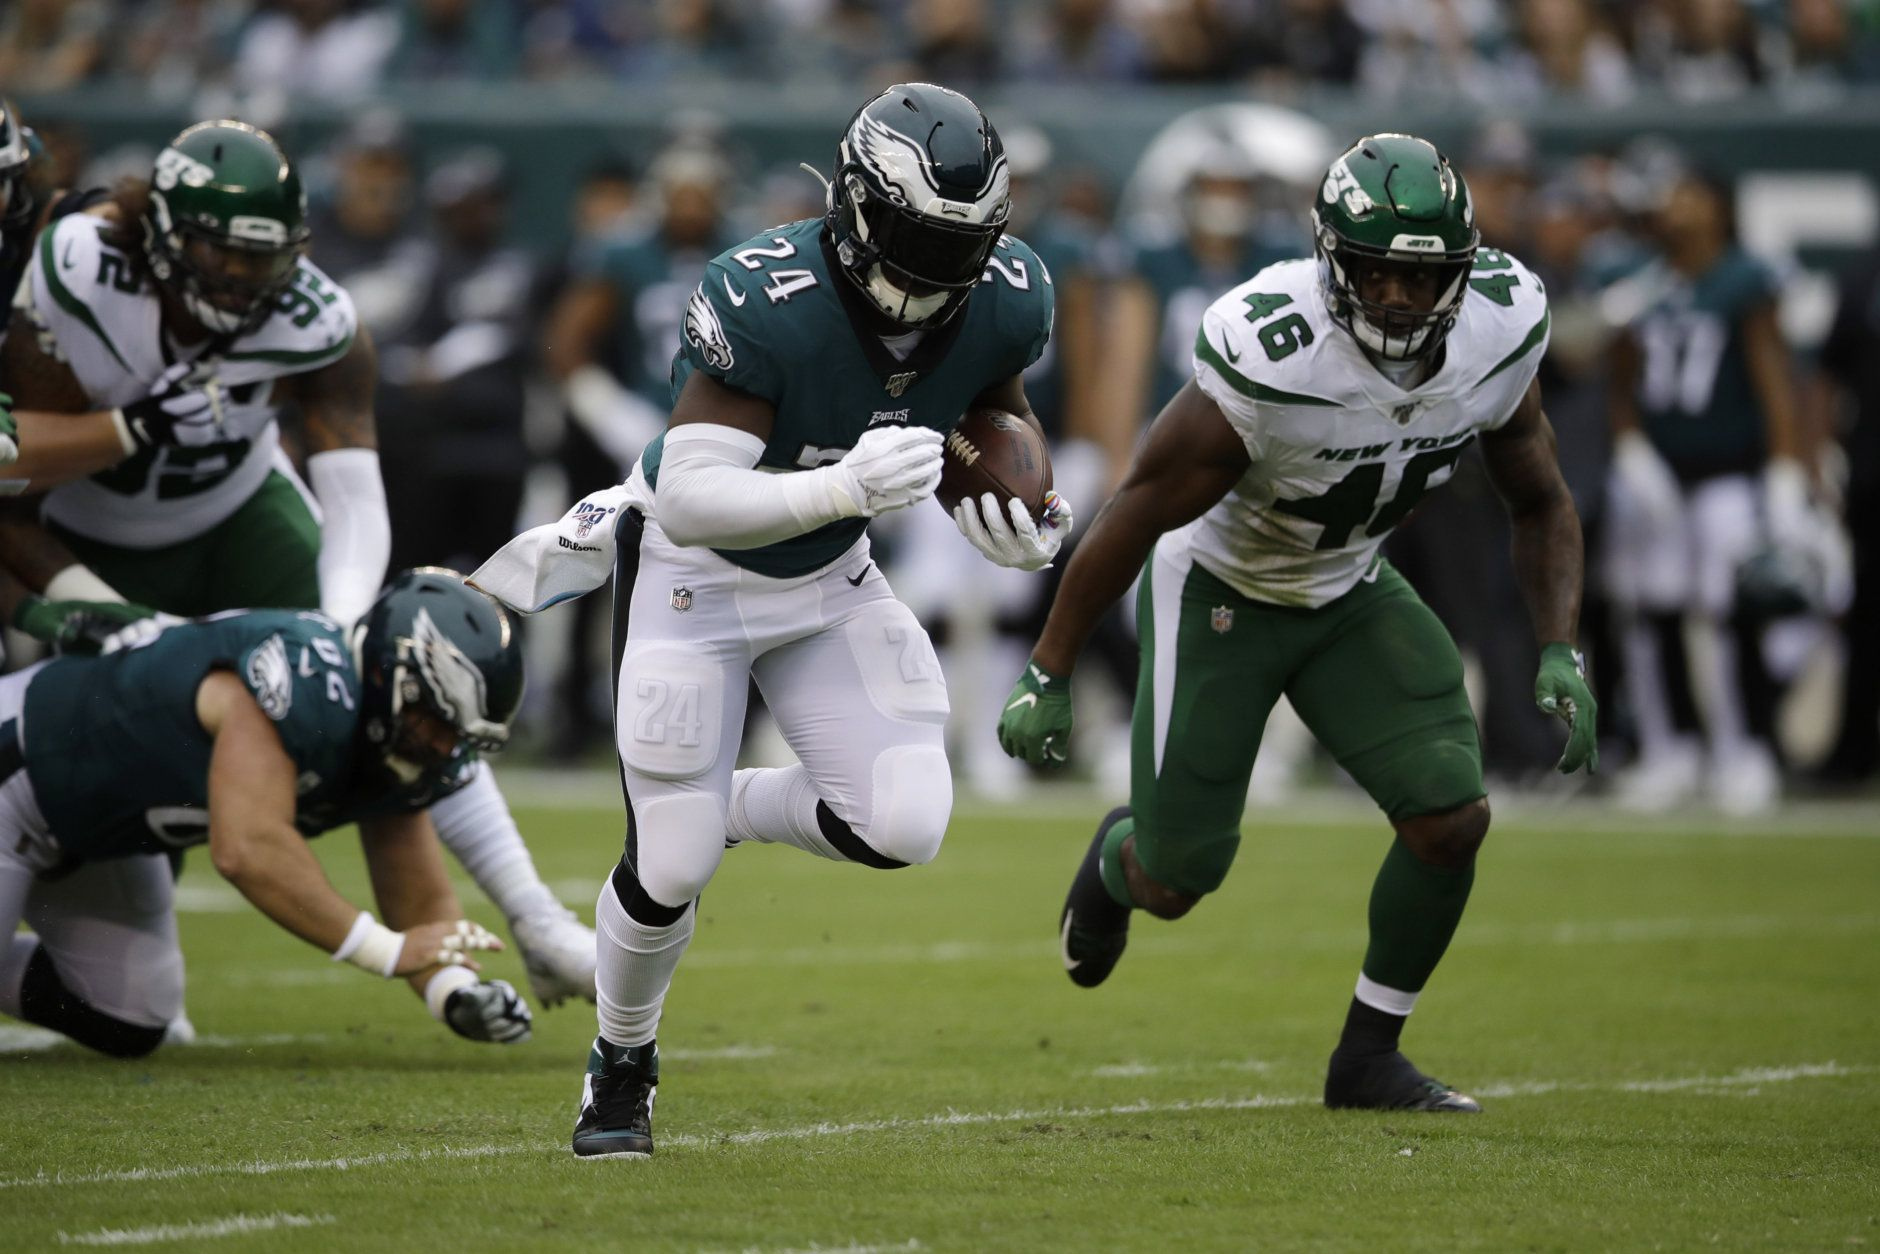 <p><em><strong>Jets 6</strong></em><br /> <em><strong>Eagles 31</strong></em></p> <p>Until Sam Darnold returns, the New York Jets are an extra bye week for their opponents. Except the Redskins. They could definitely beat the Redskins.</p>